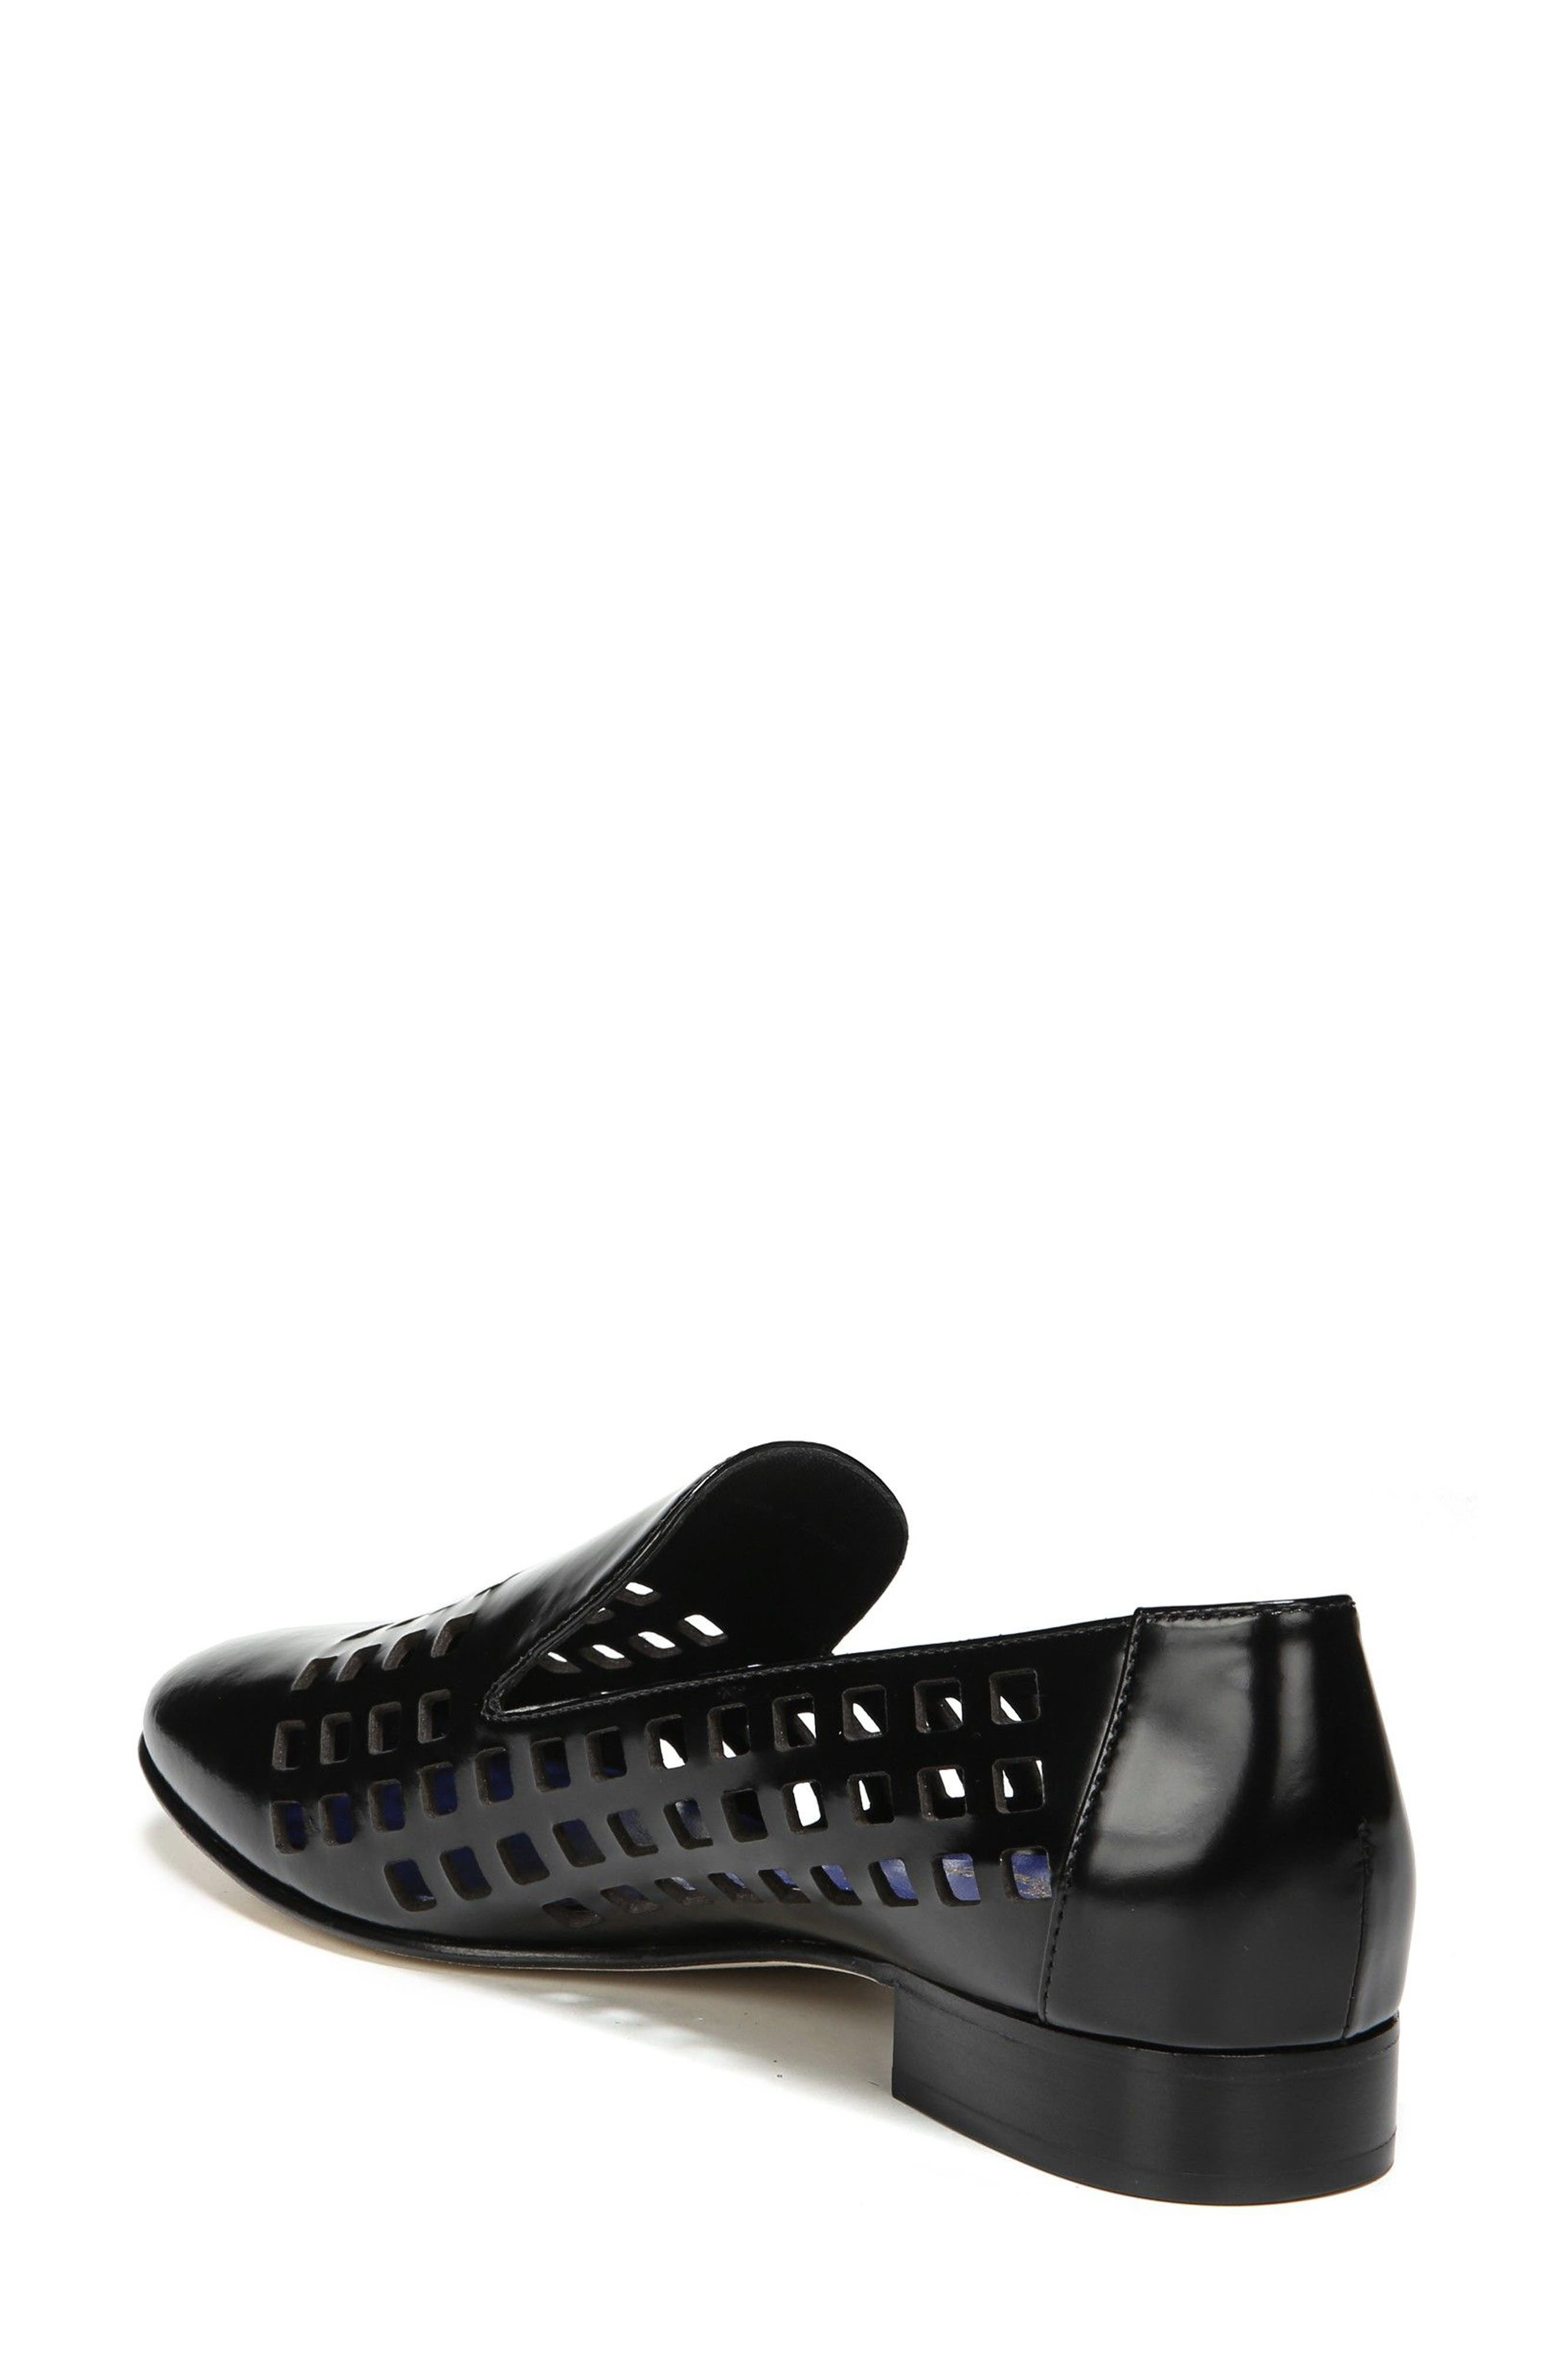 Linz Perforated Loafer,                             Alternate thumbnail 2, color,                             001